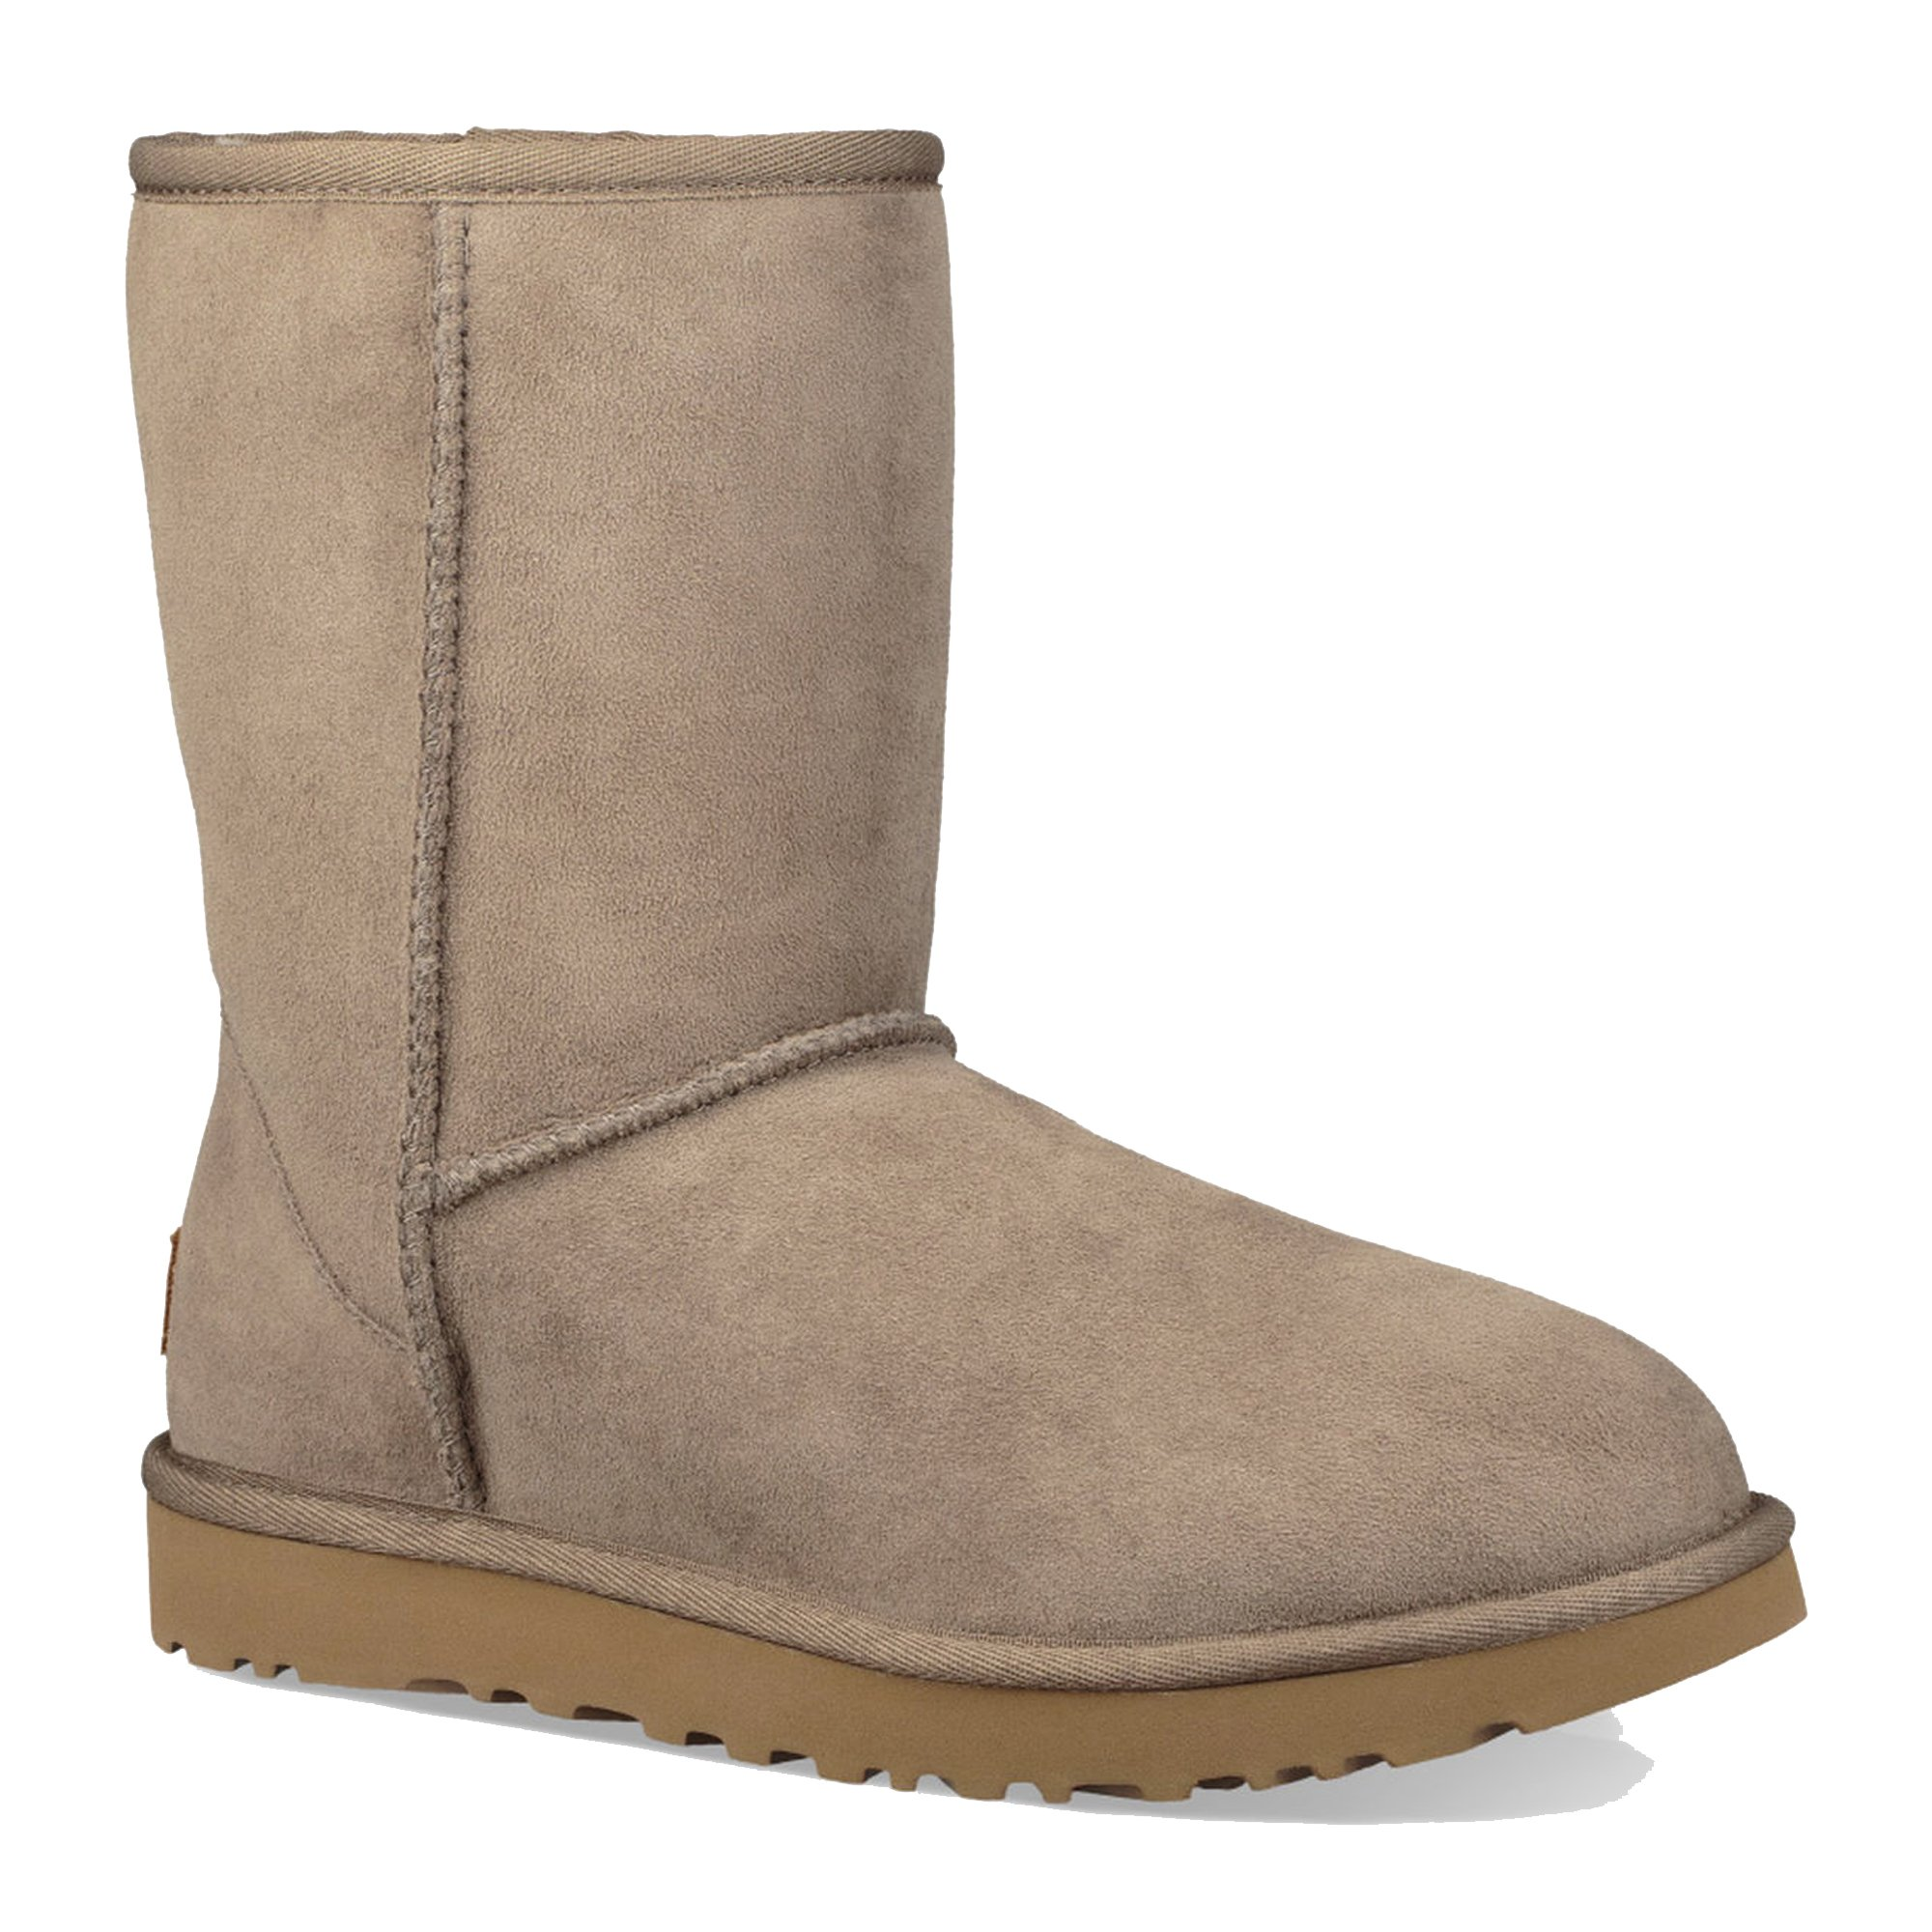 UGG Classic Short Boots II, 8M, Brindle by UGG